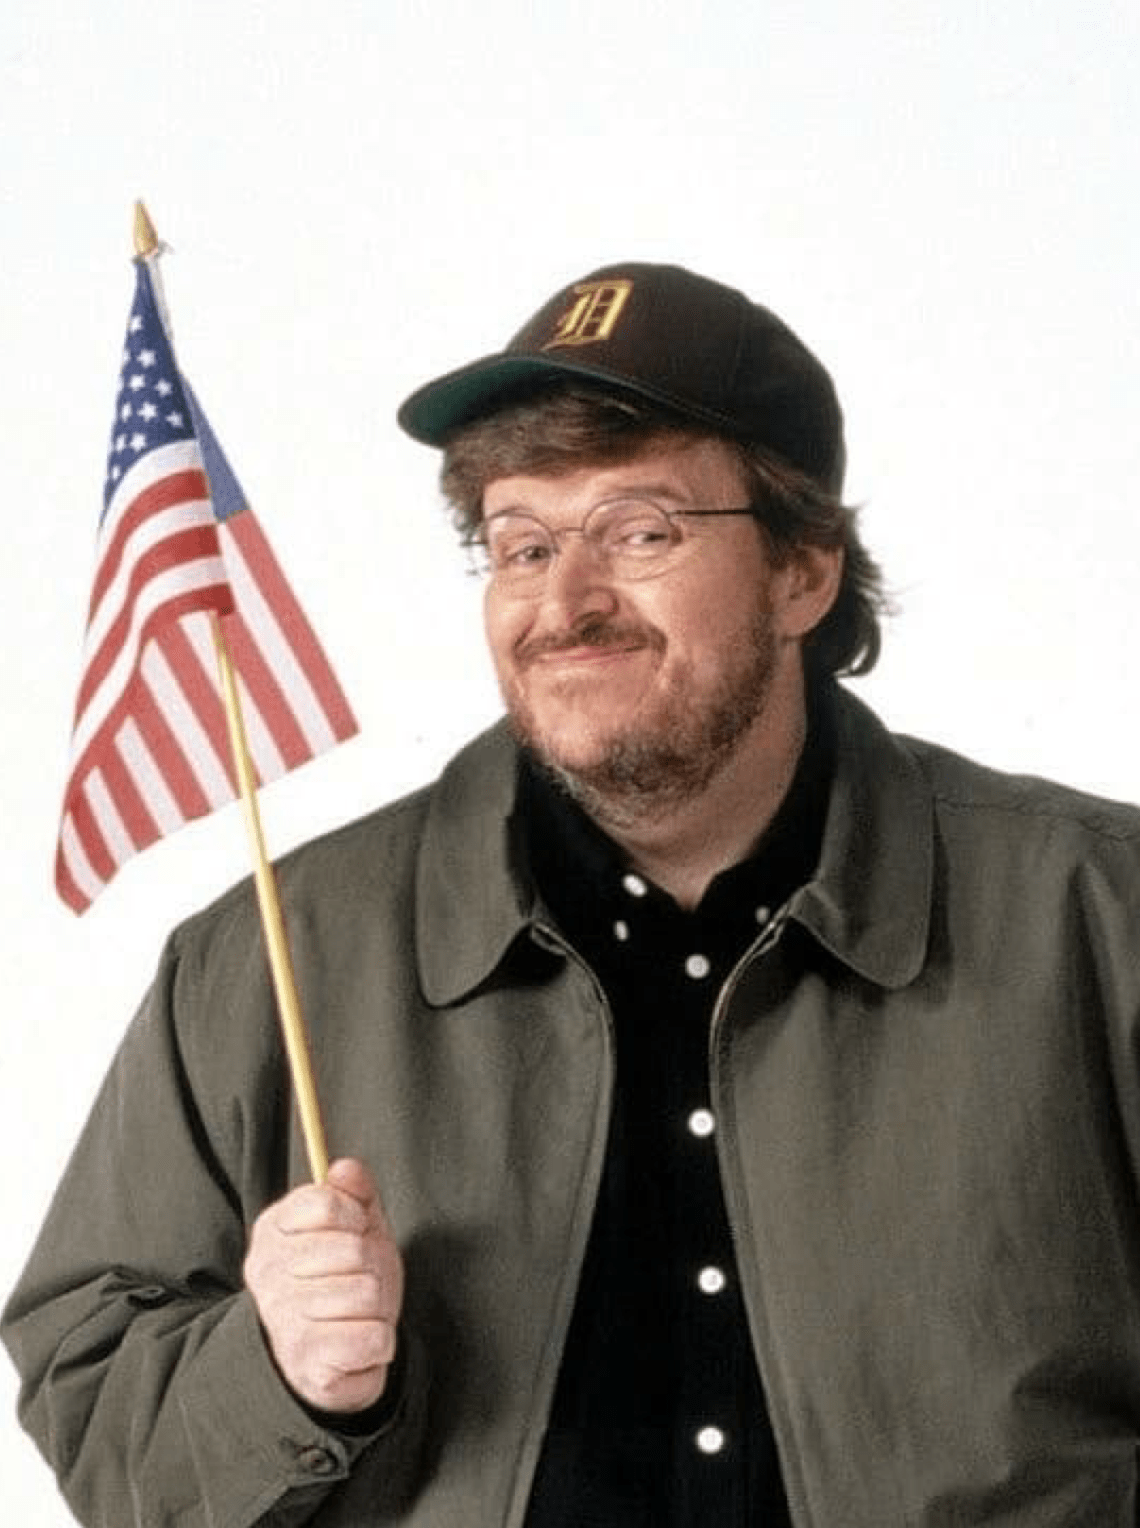 Thumbnail for Michael Moore Case Study